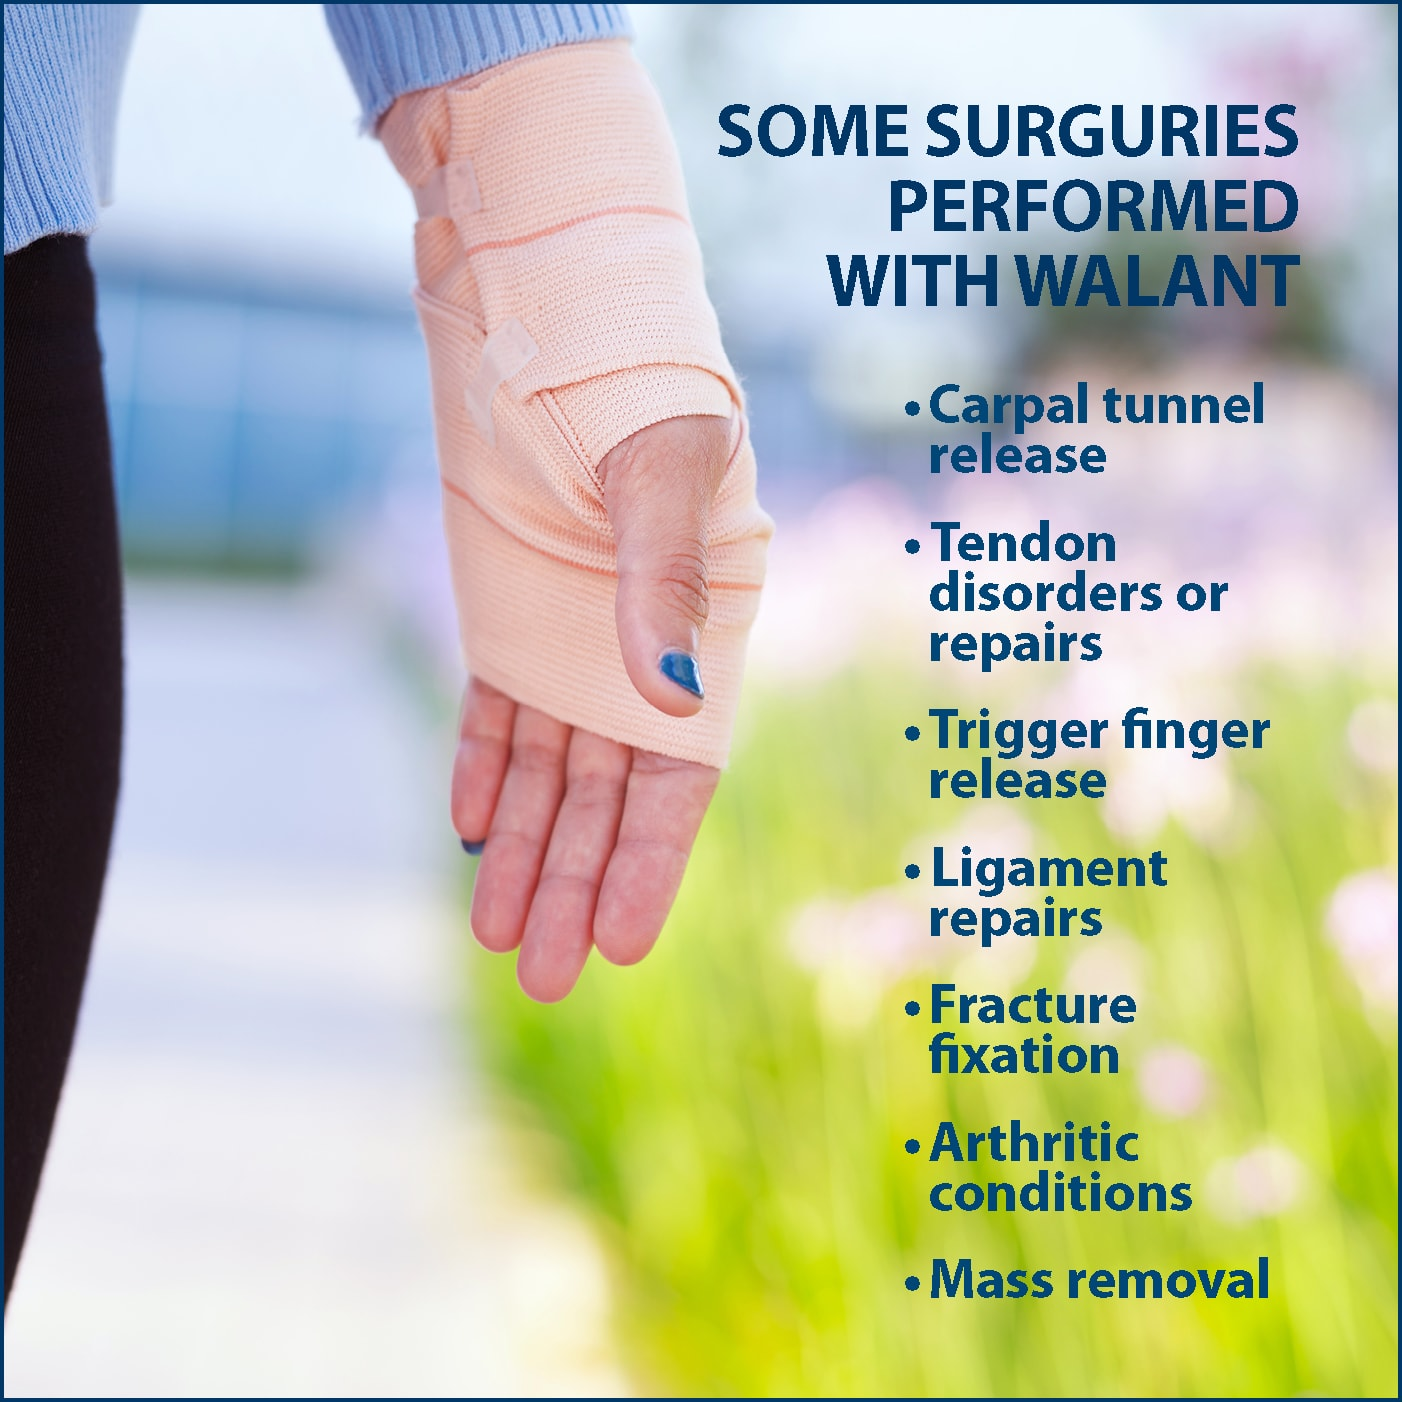 WALANT Wide Awake Local Anesthesia No Tourniquet Surgery